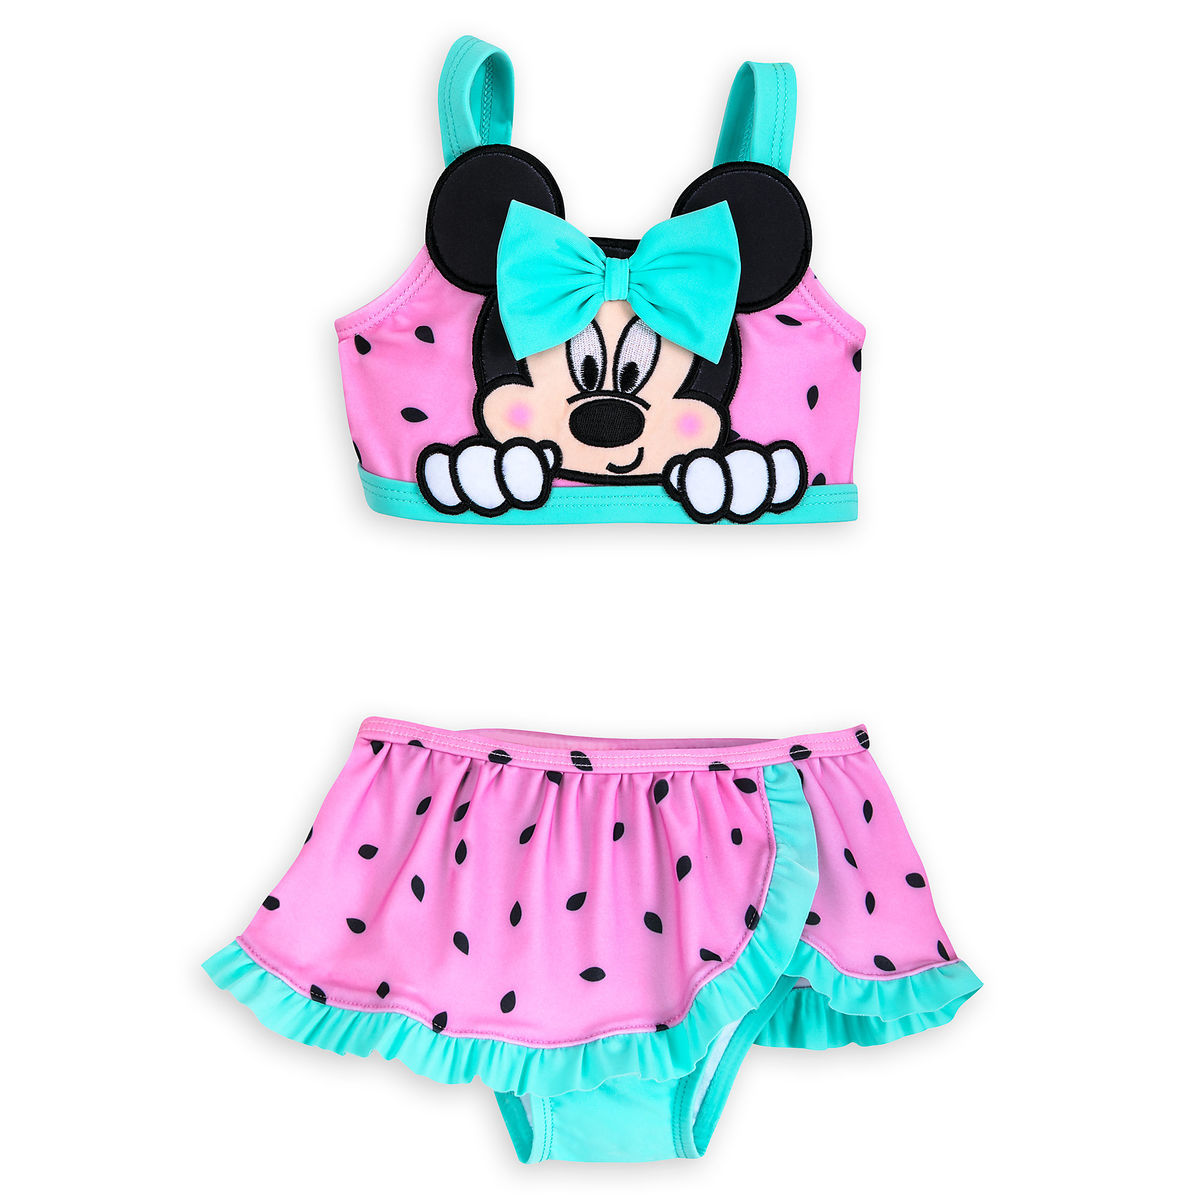 6fb6a0ba52637 Product Image of Minnie Mouse Two-Piece Watermelon Swimsuit for Baby   1